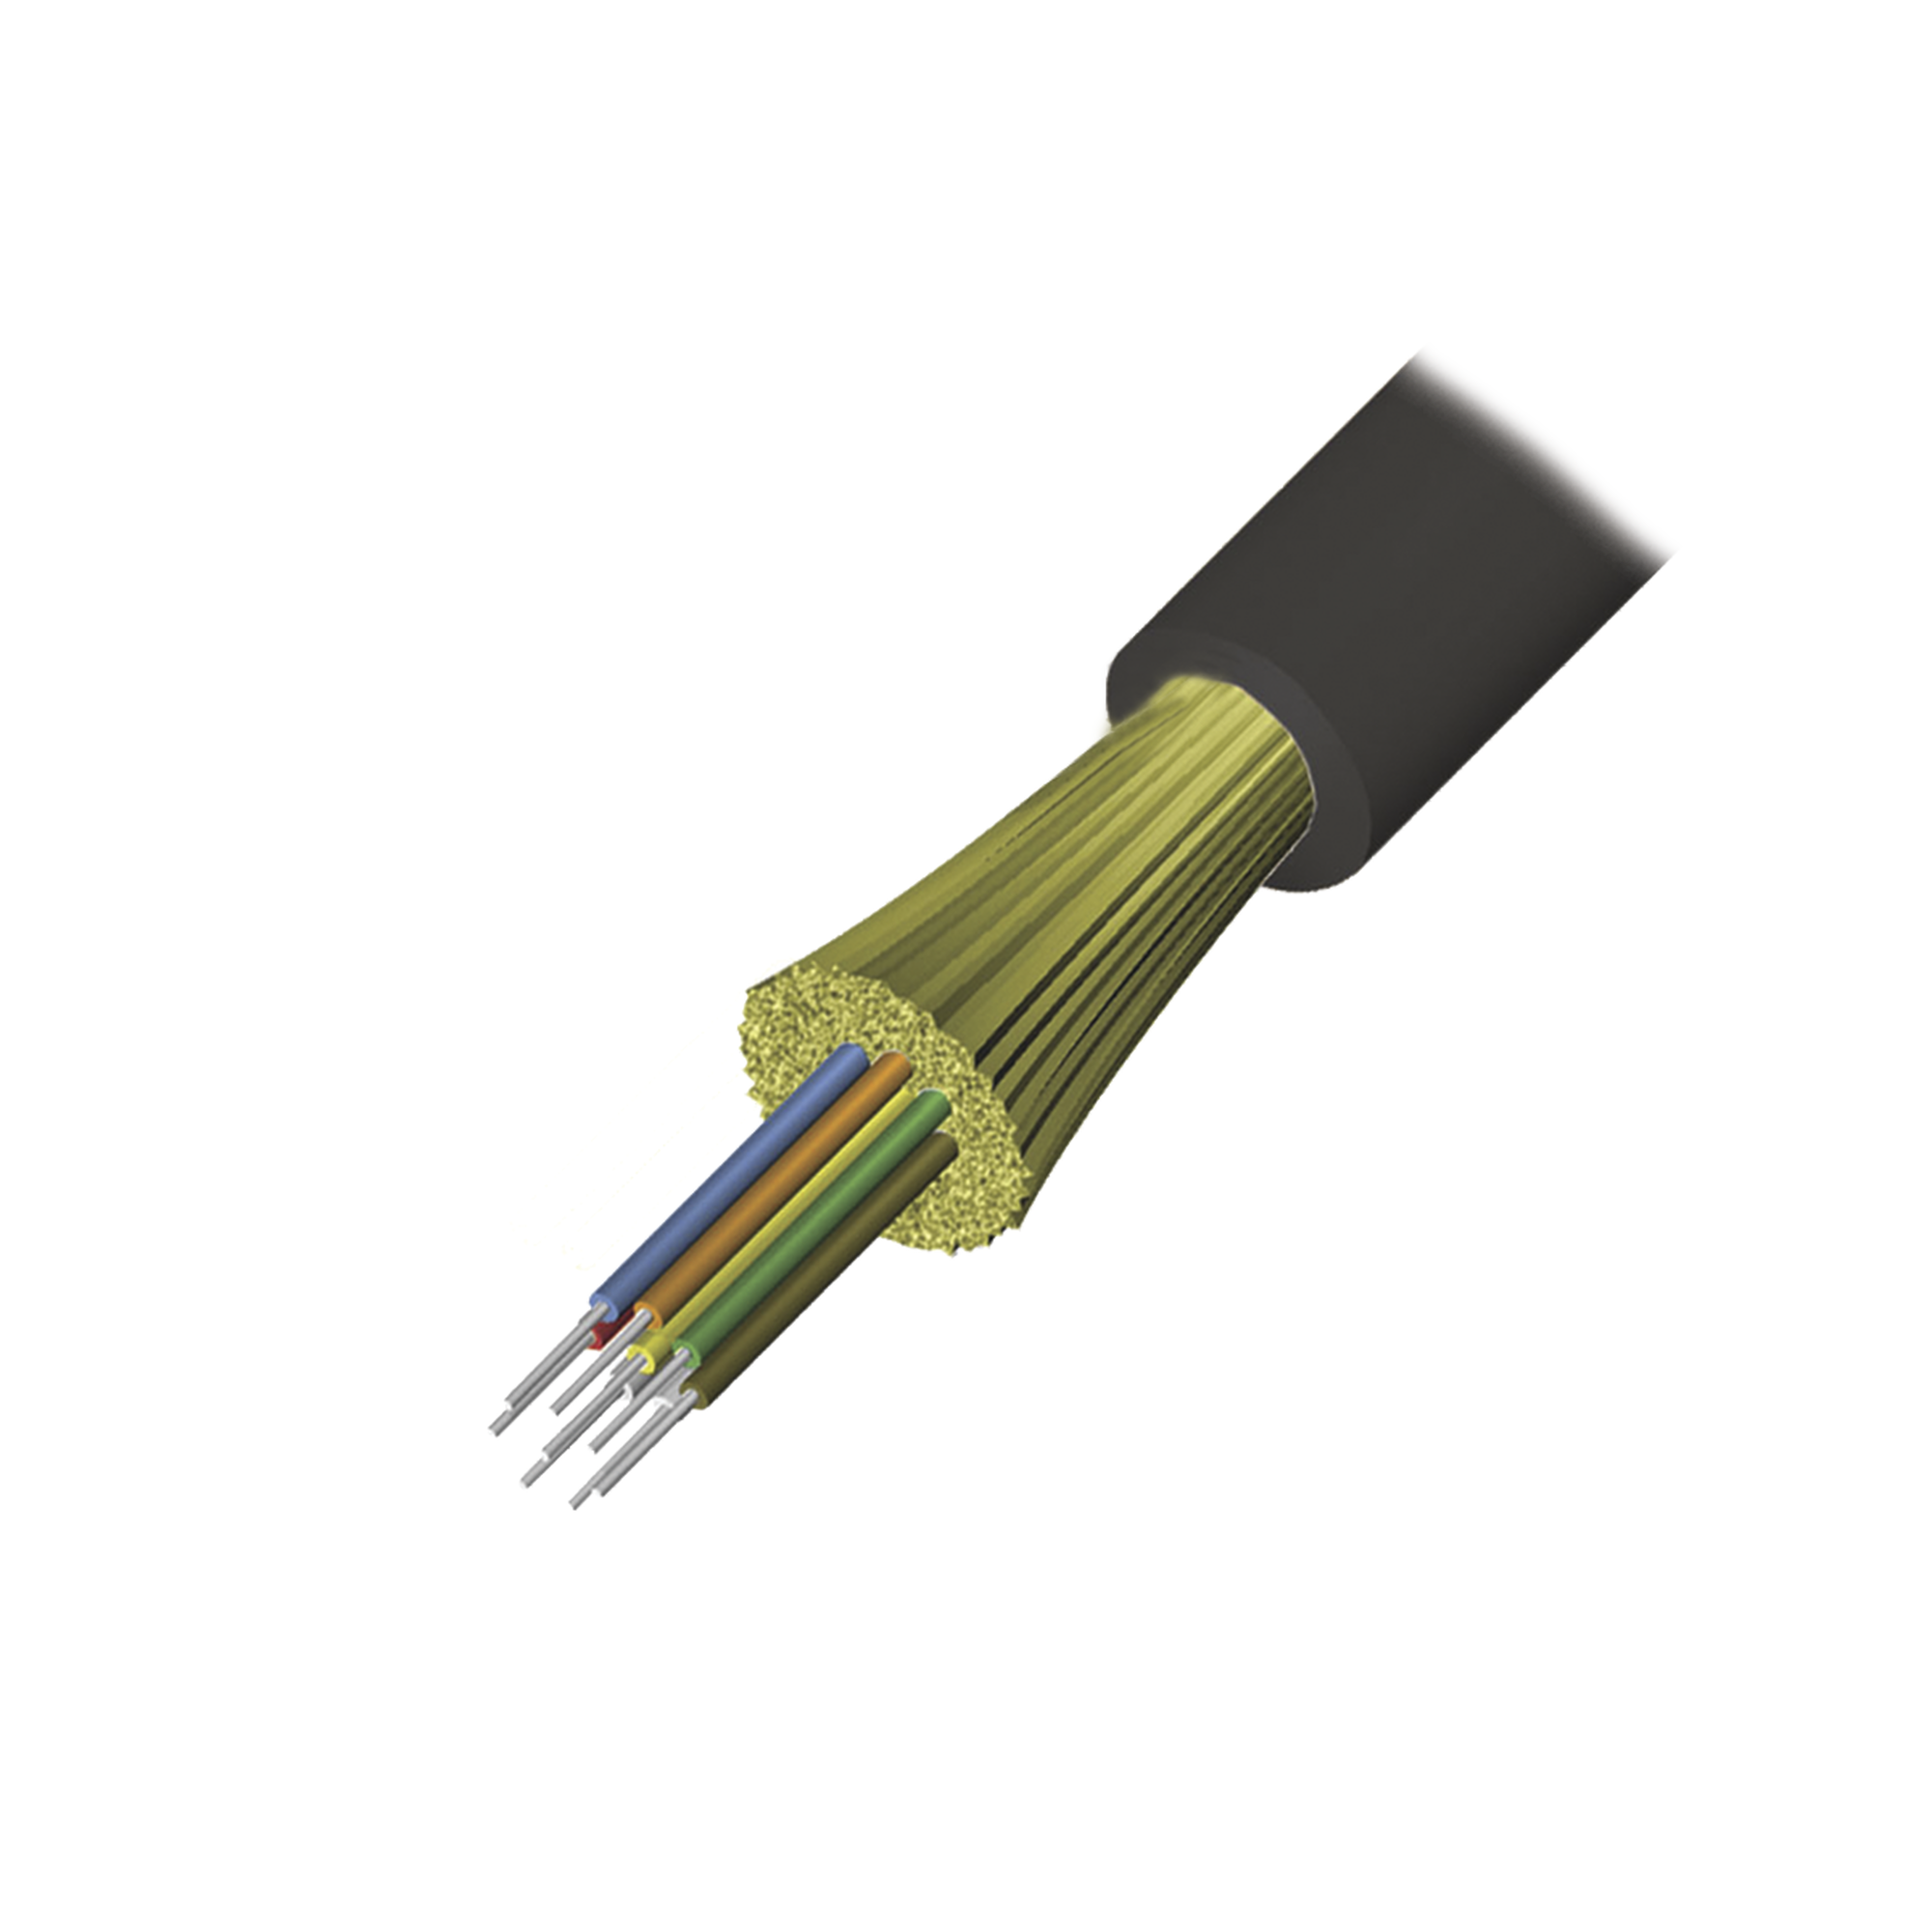 Cable de Fibra optica de 6 hilos, Interior/Exterior, Tight Buffer, No Conductiva (Dielectrica), LS0H, Monomodo OS1/OS2 9/125, 1 Metro